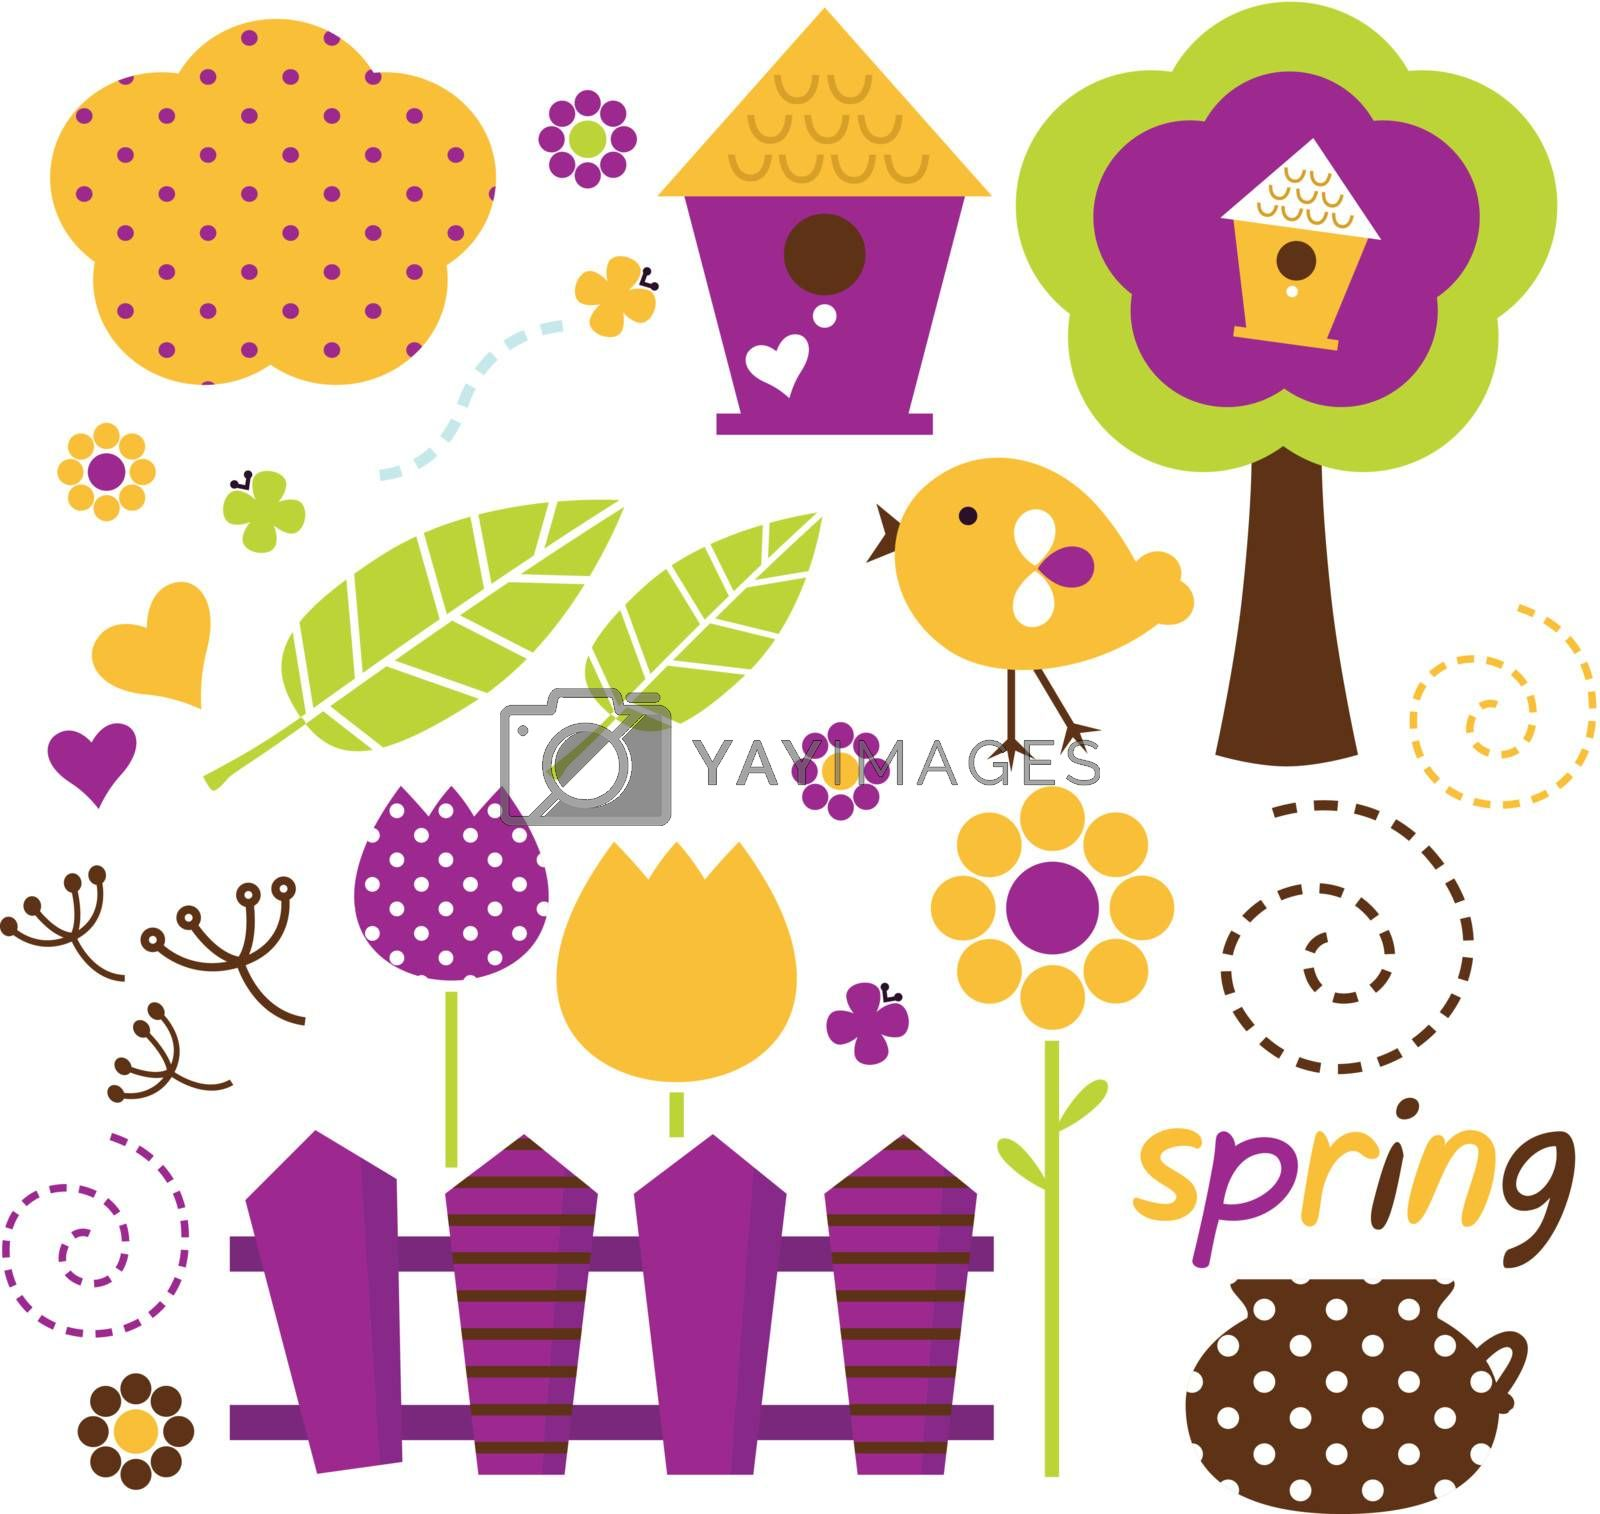 Spring retro floral design elements. Vector